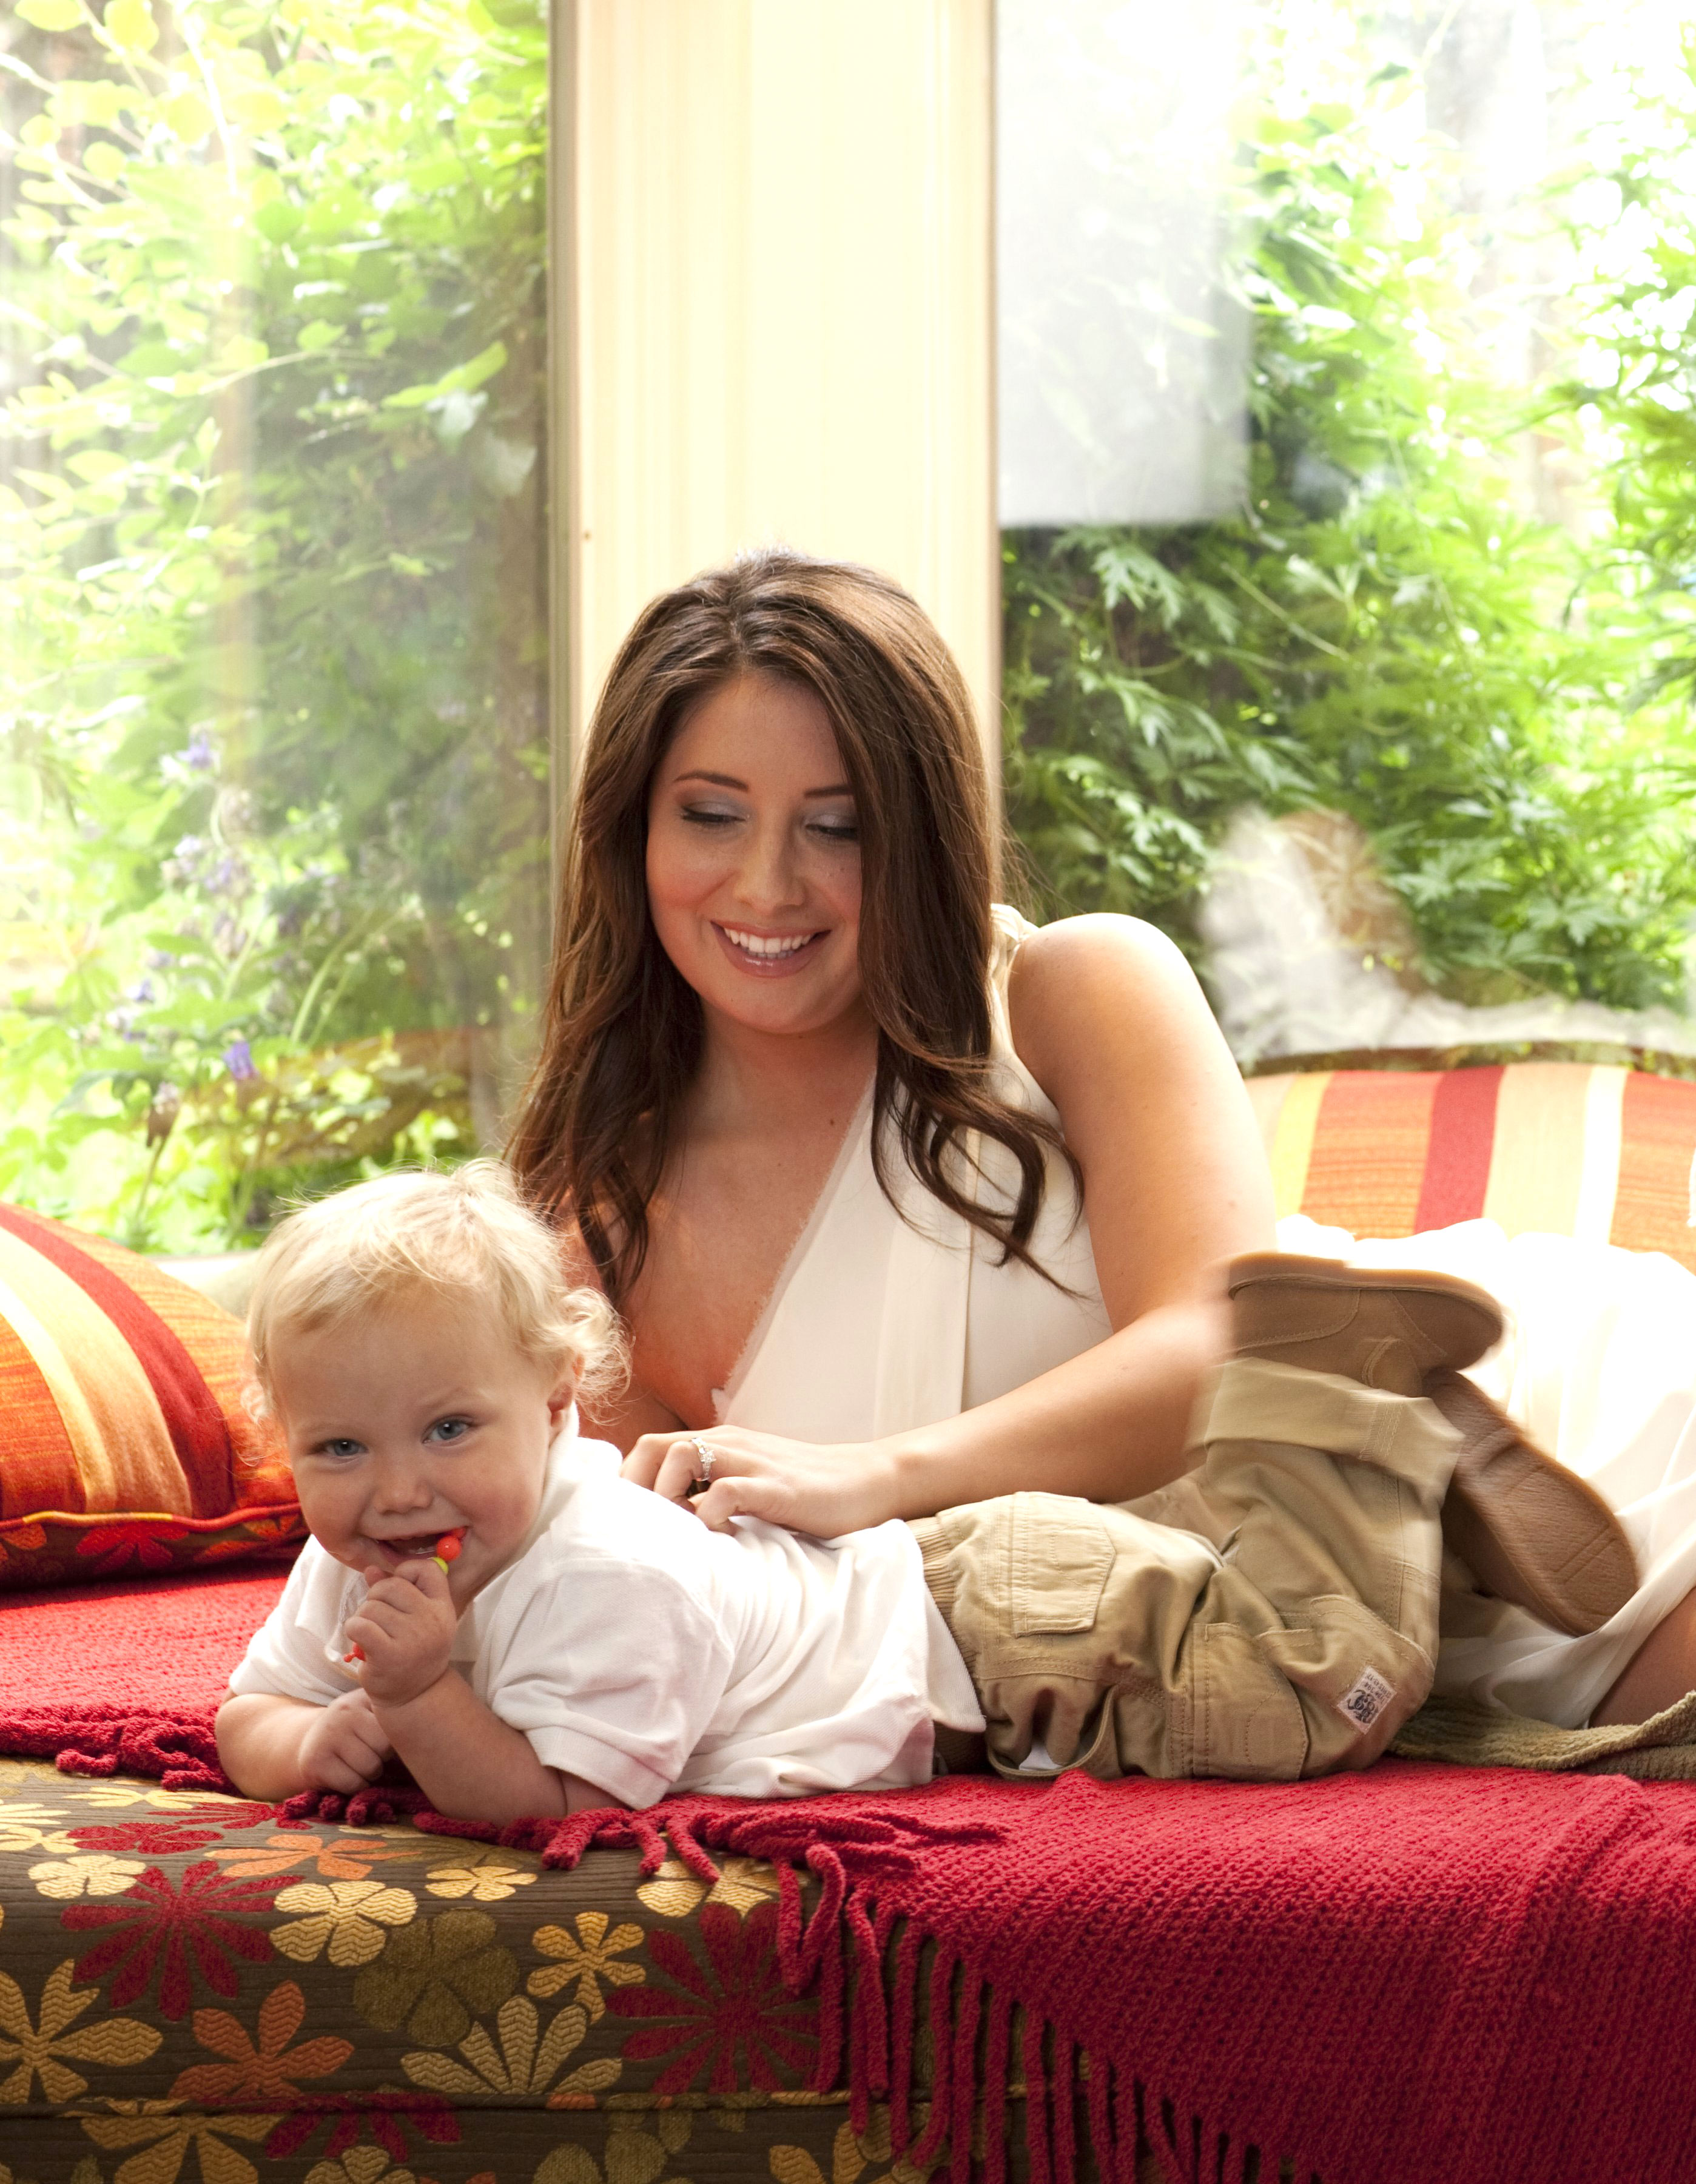 Teen Mom OG Tots: How They've Grown - Palin and her then-fiancé, Levi Johnston , welcomed their son, Tripp, in December 2008. The pair split in July 2010.